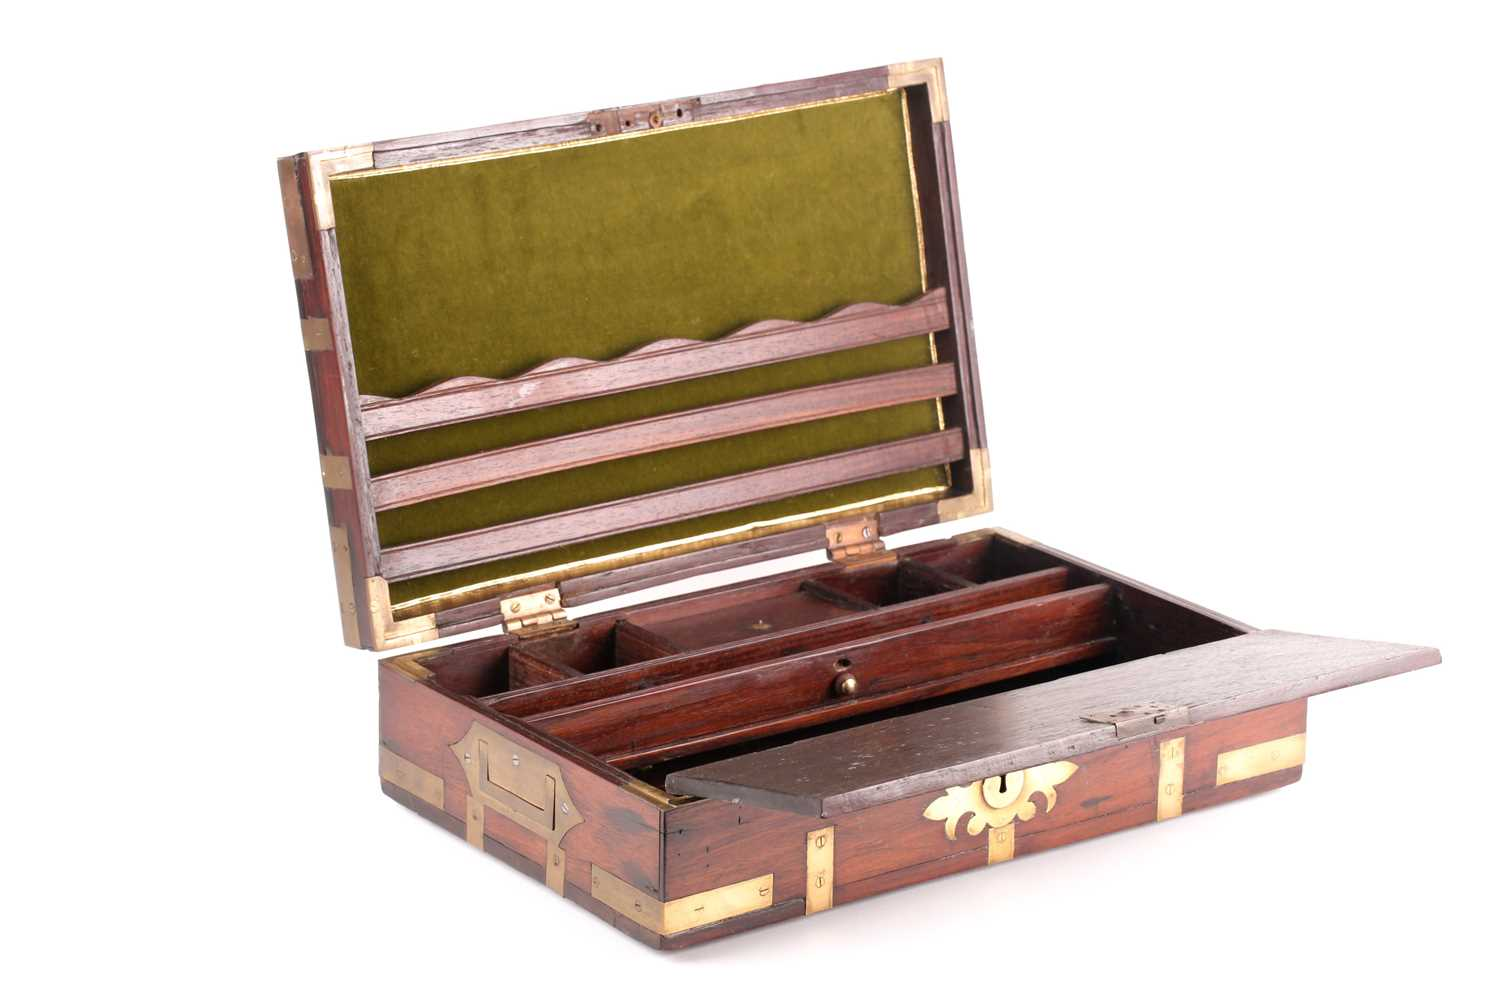 An early 19th-century Anglo-Indian brass bound teakwood campaign correspondence box. With sunken